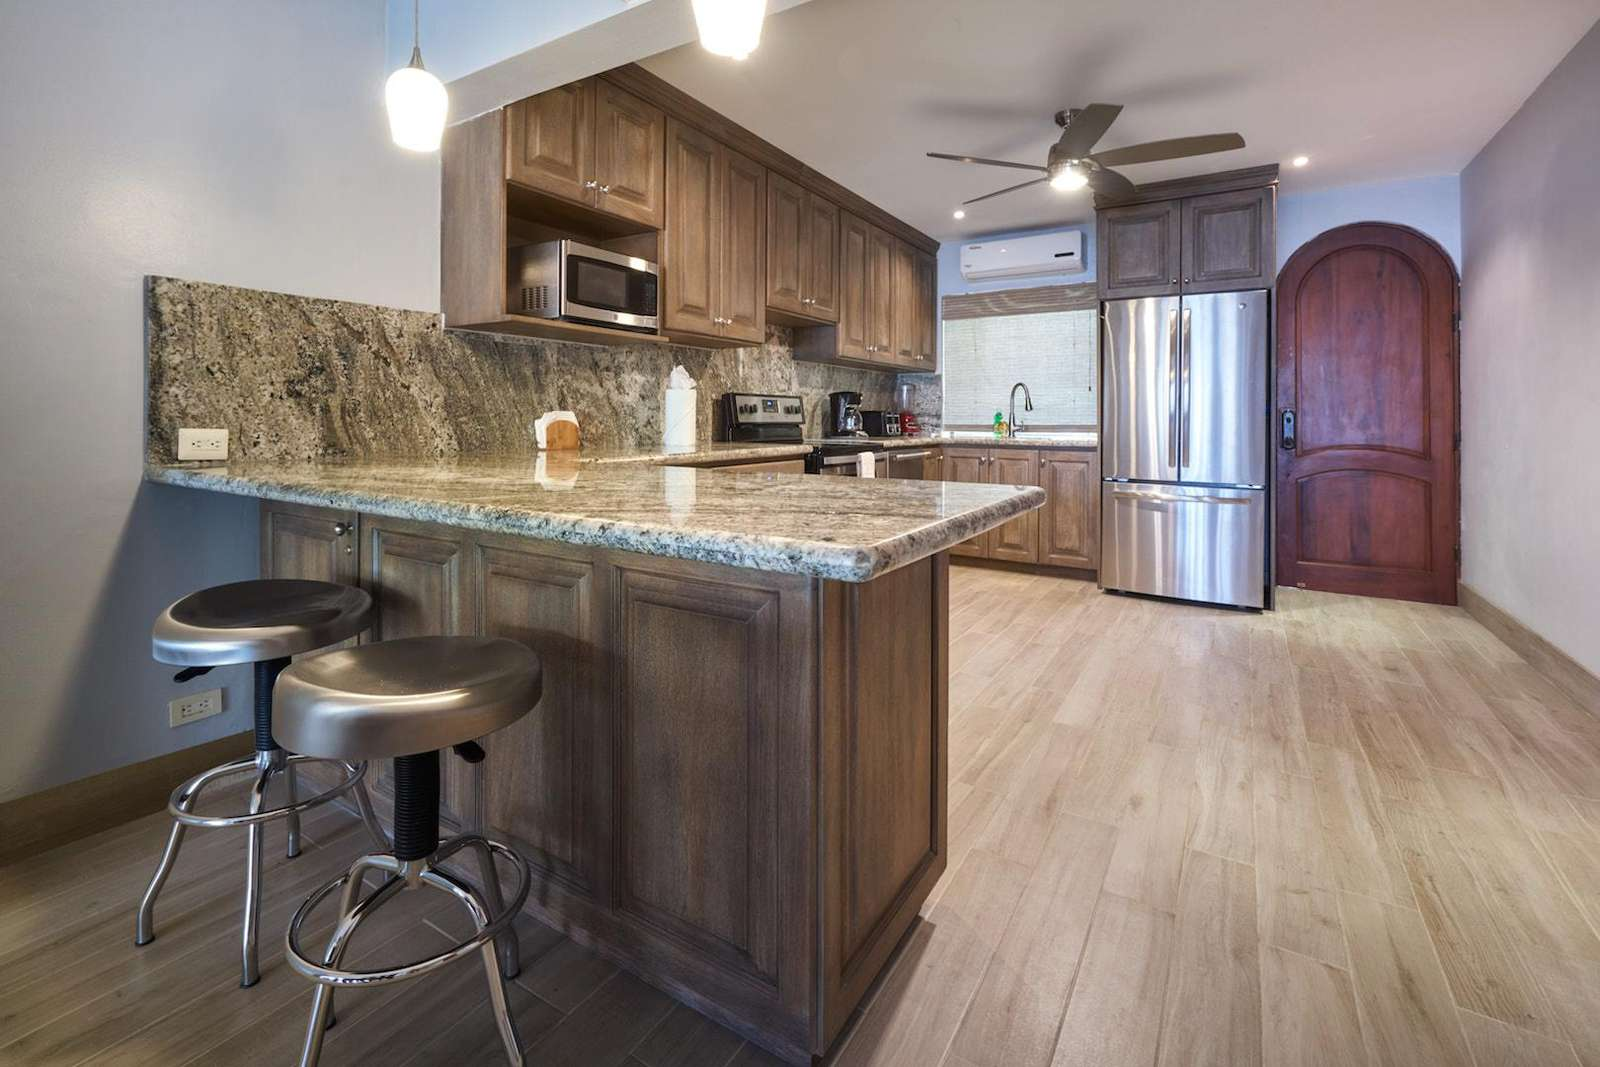 Another view of the gourmet kitchen, with breakfast bar